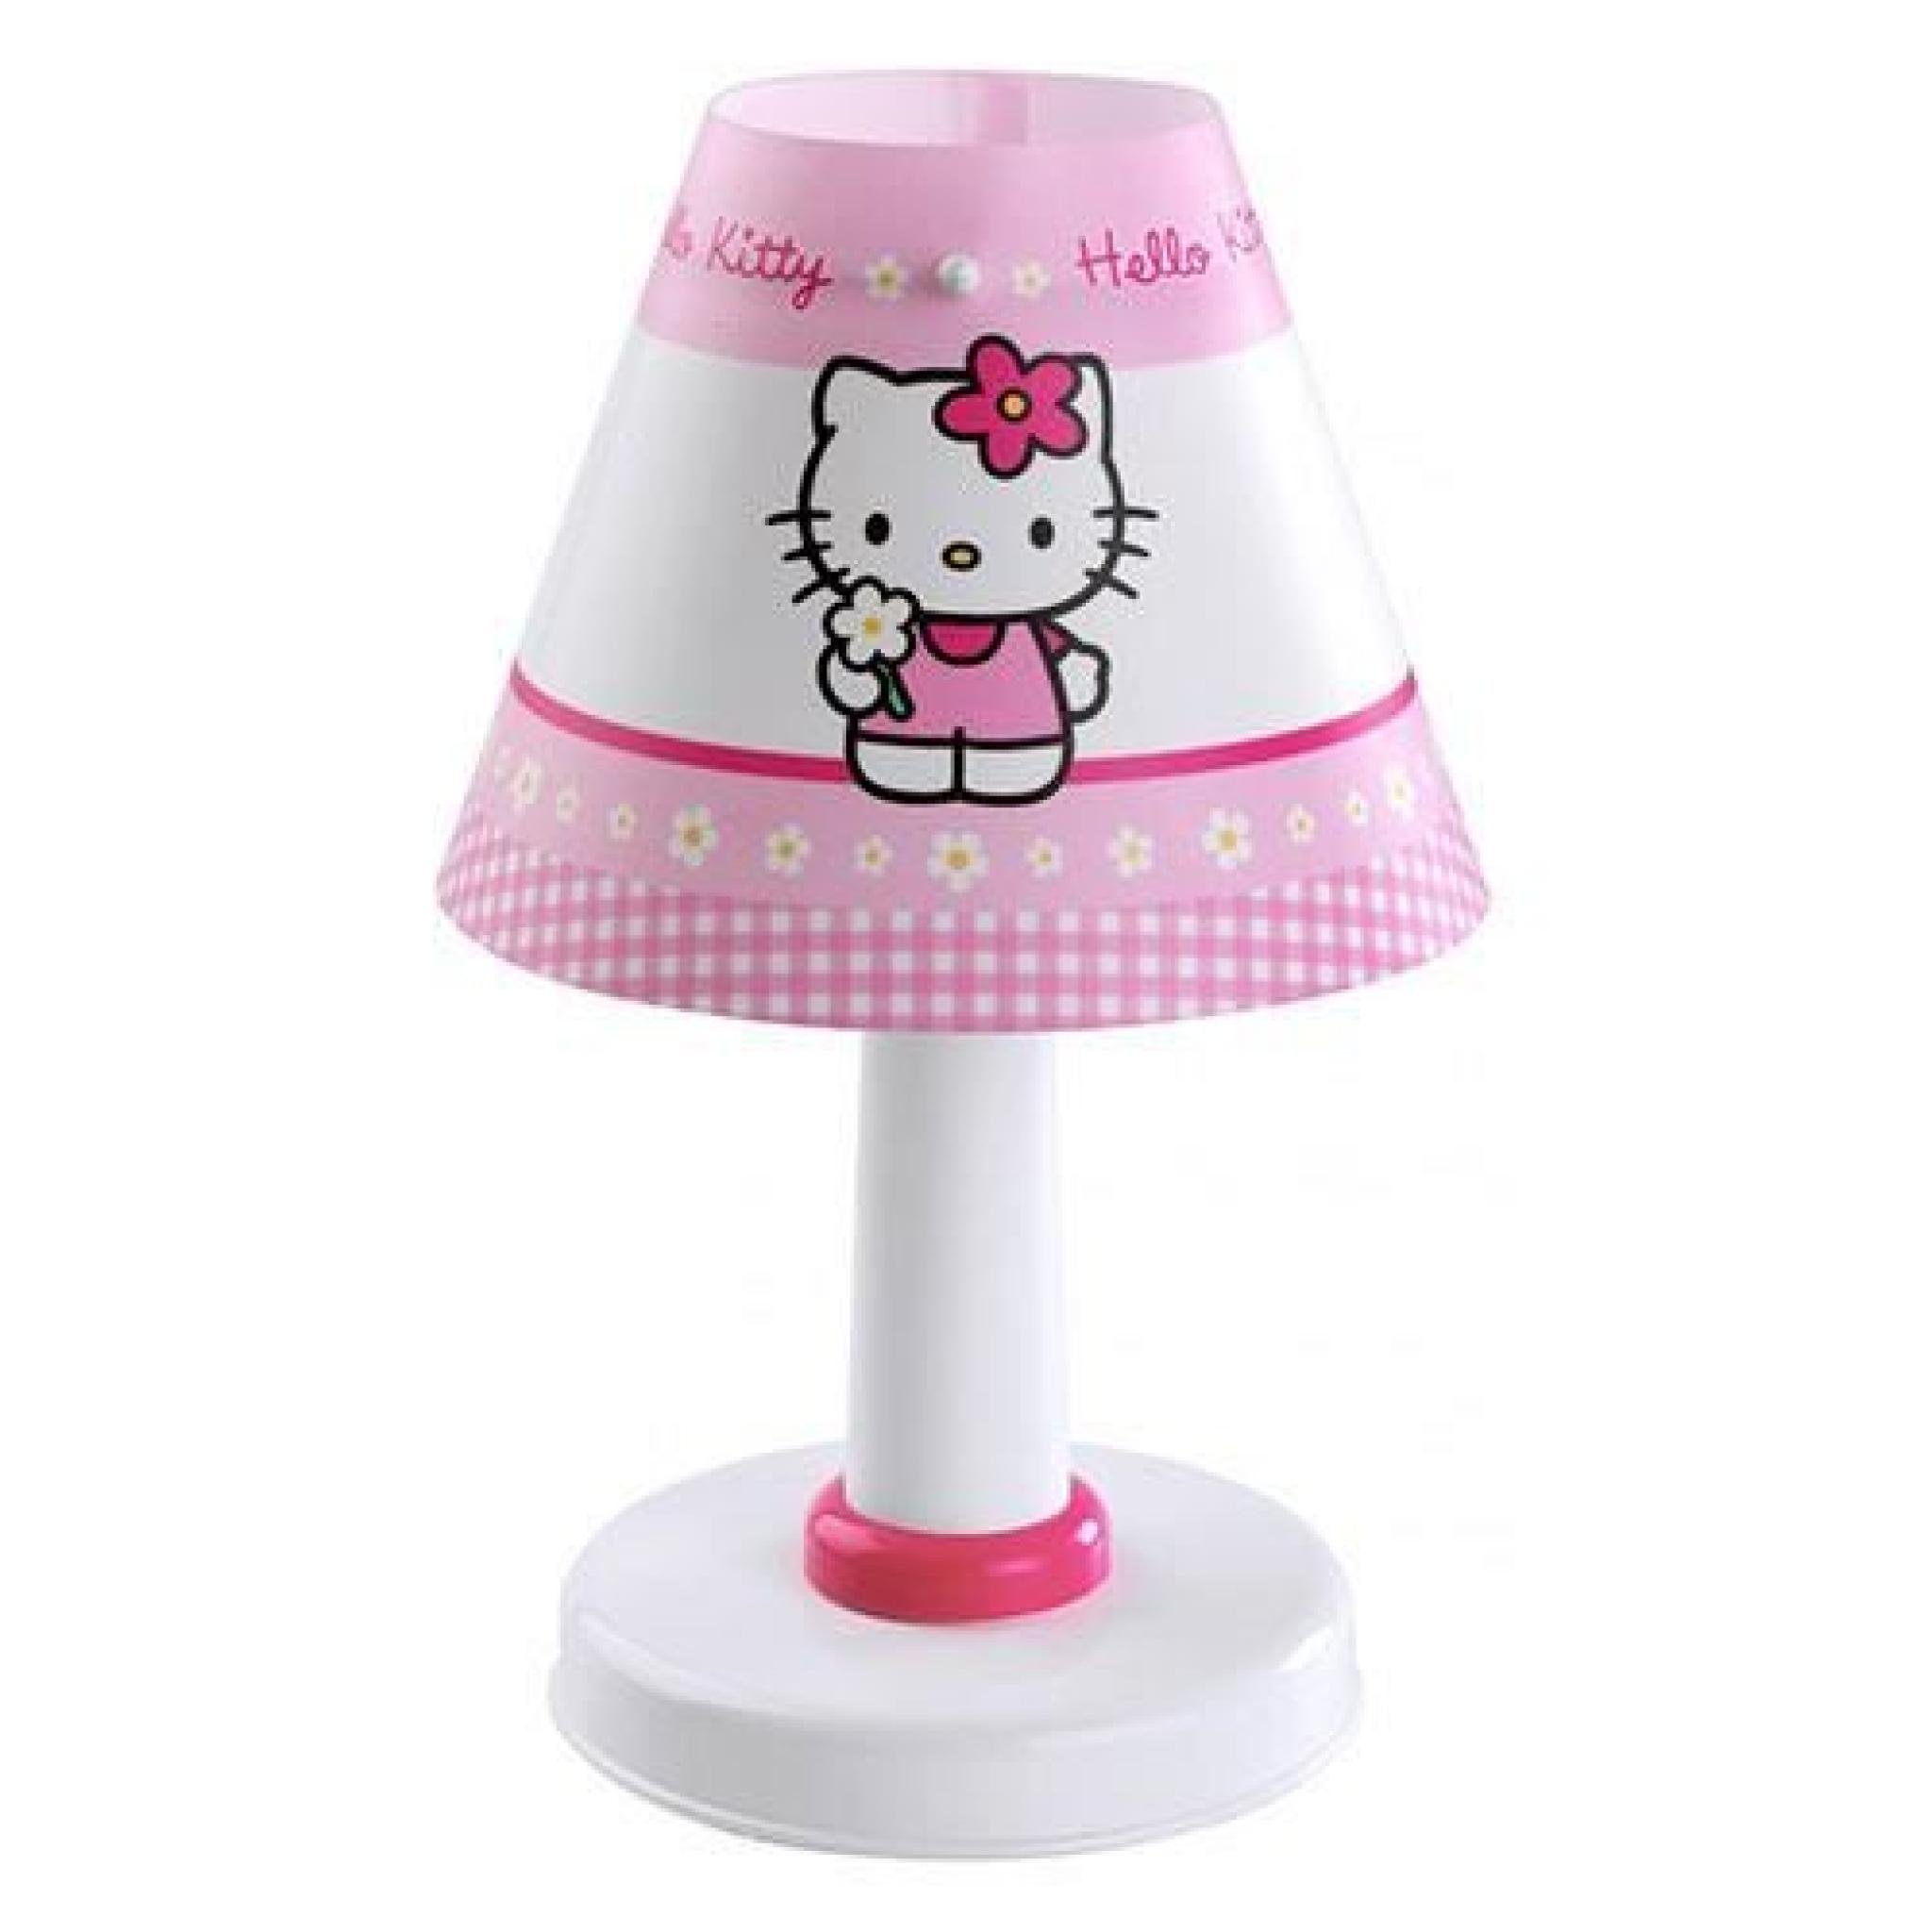 lampe de chevet hello kitty achat vente lampe a poser pas cher couleur et. Black Bedroom Furniture Sets. Home Design Ideas